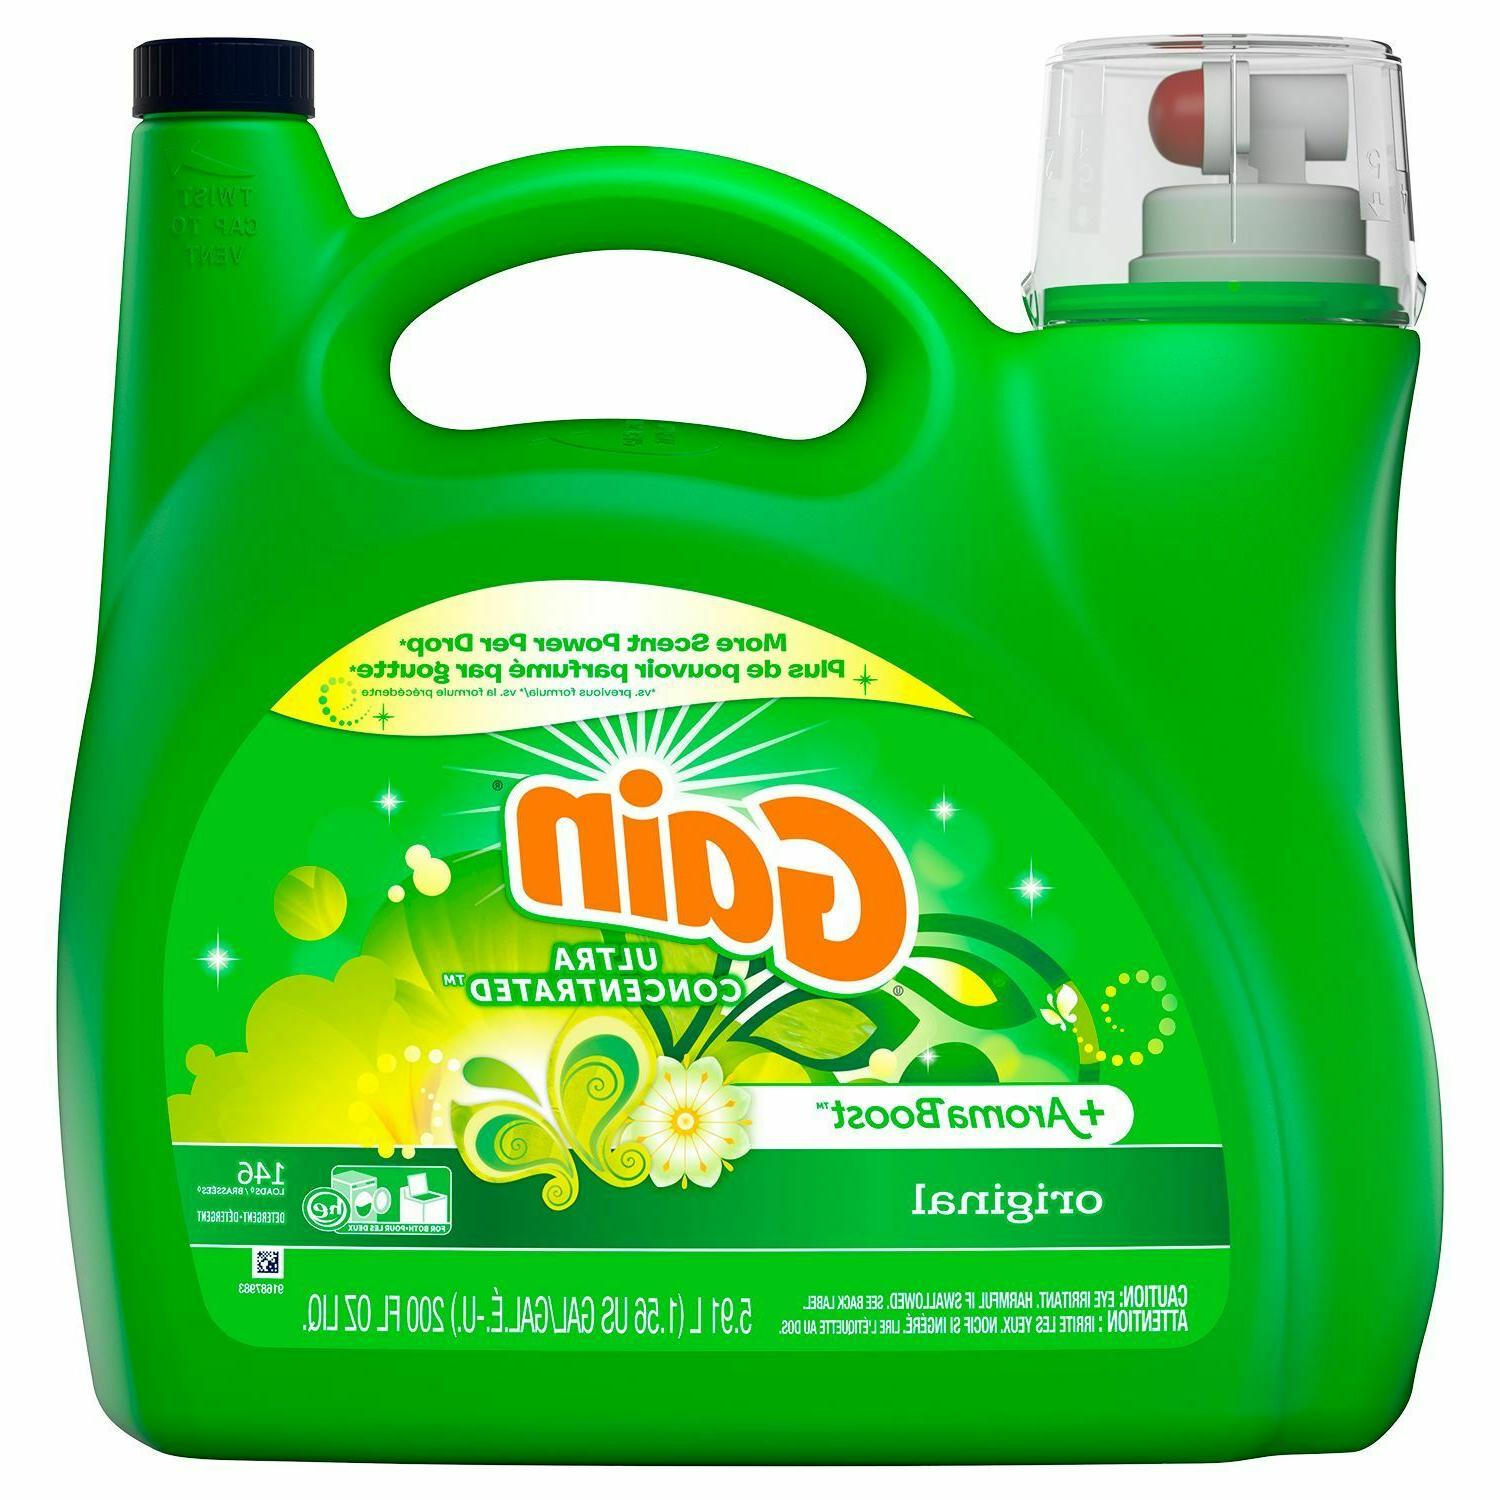 aromaboost ultra concentrated liquid laundry detergent origi